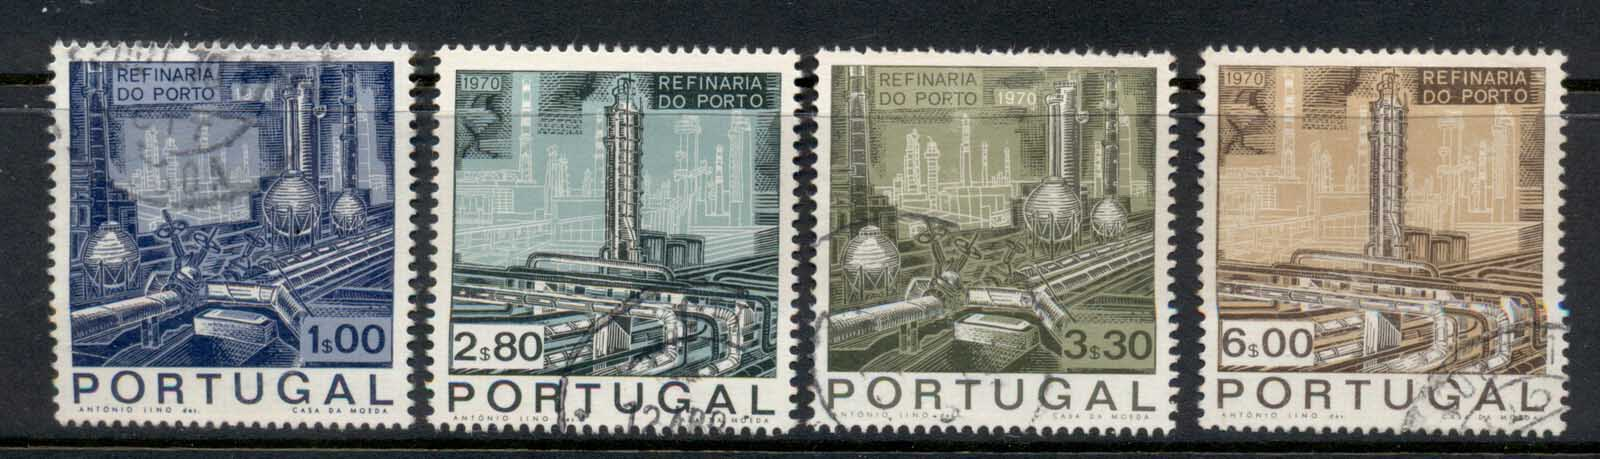 Portugal 1970 Oporto Oil Refinery FU